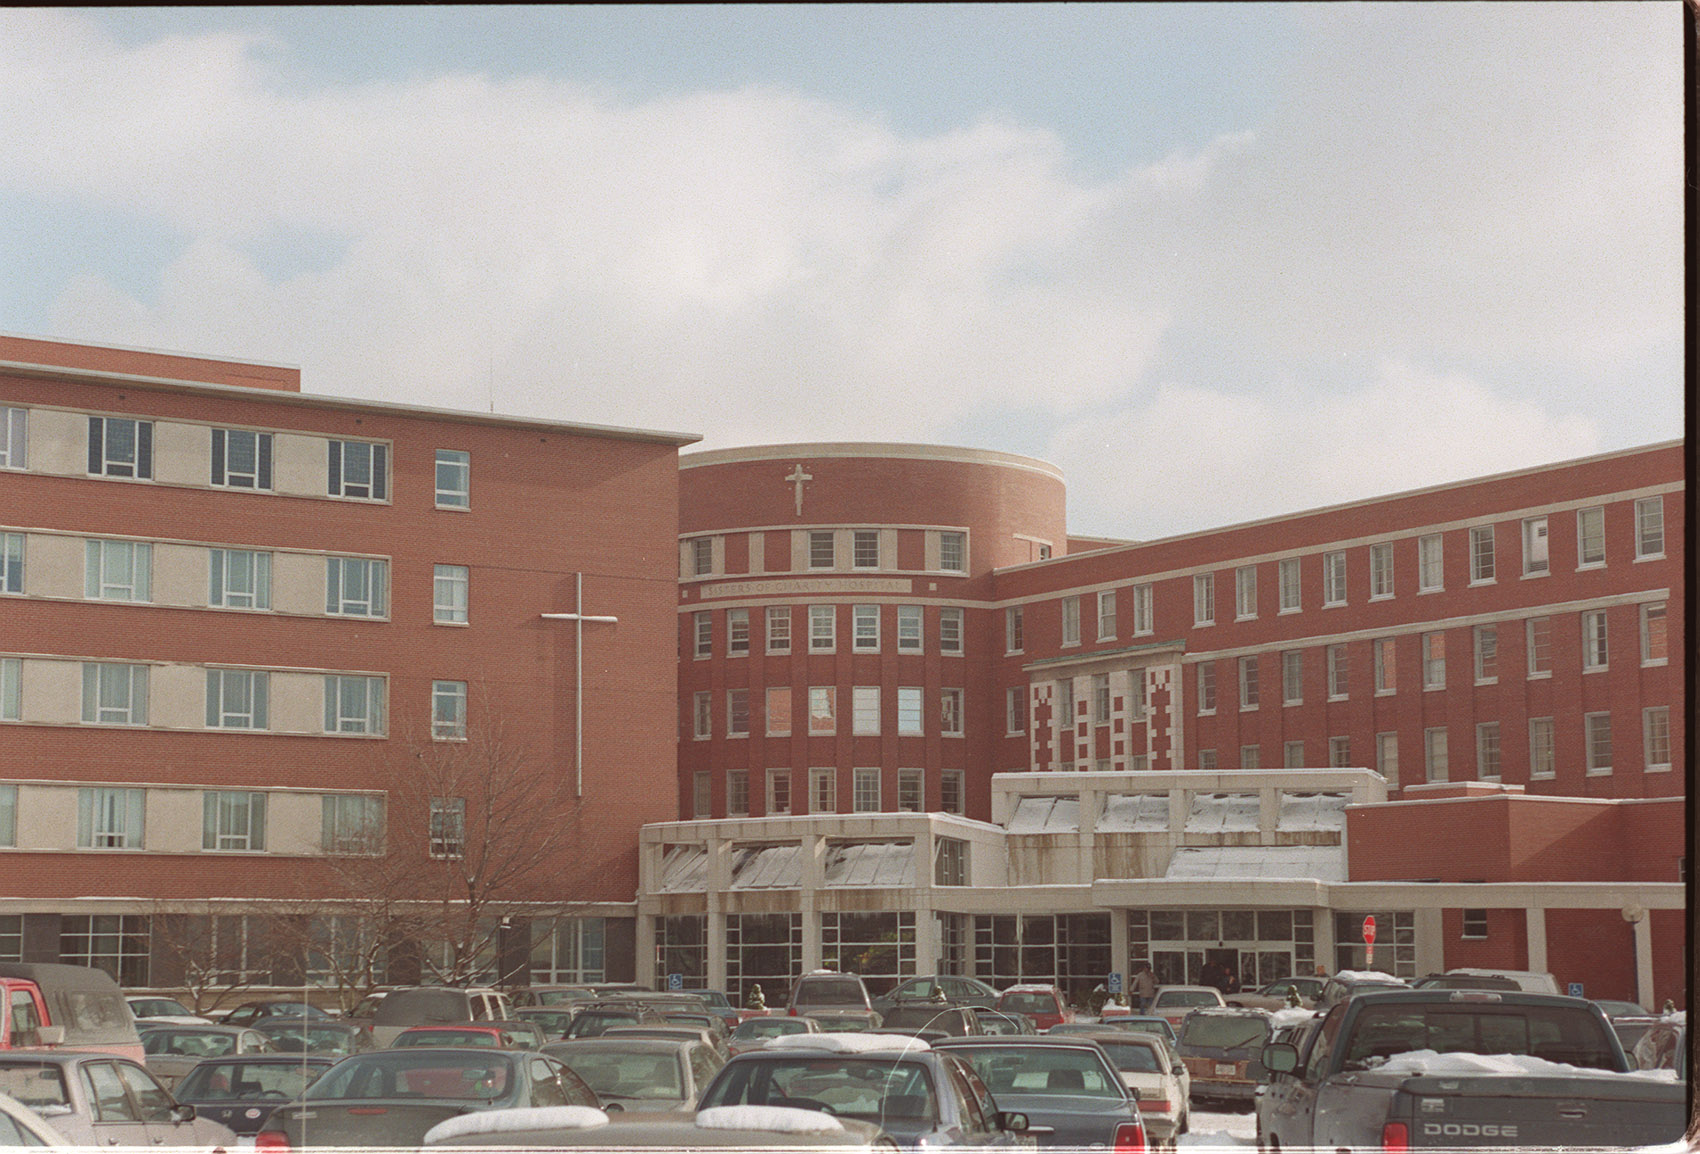 Sisters Hospital is one of three area hospitals that received top grades. (Buffalo News file photo)